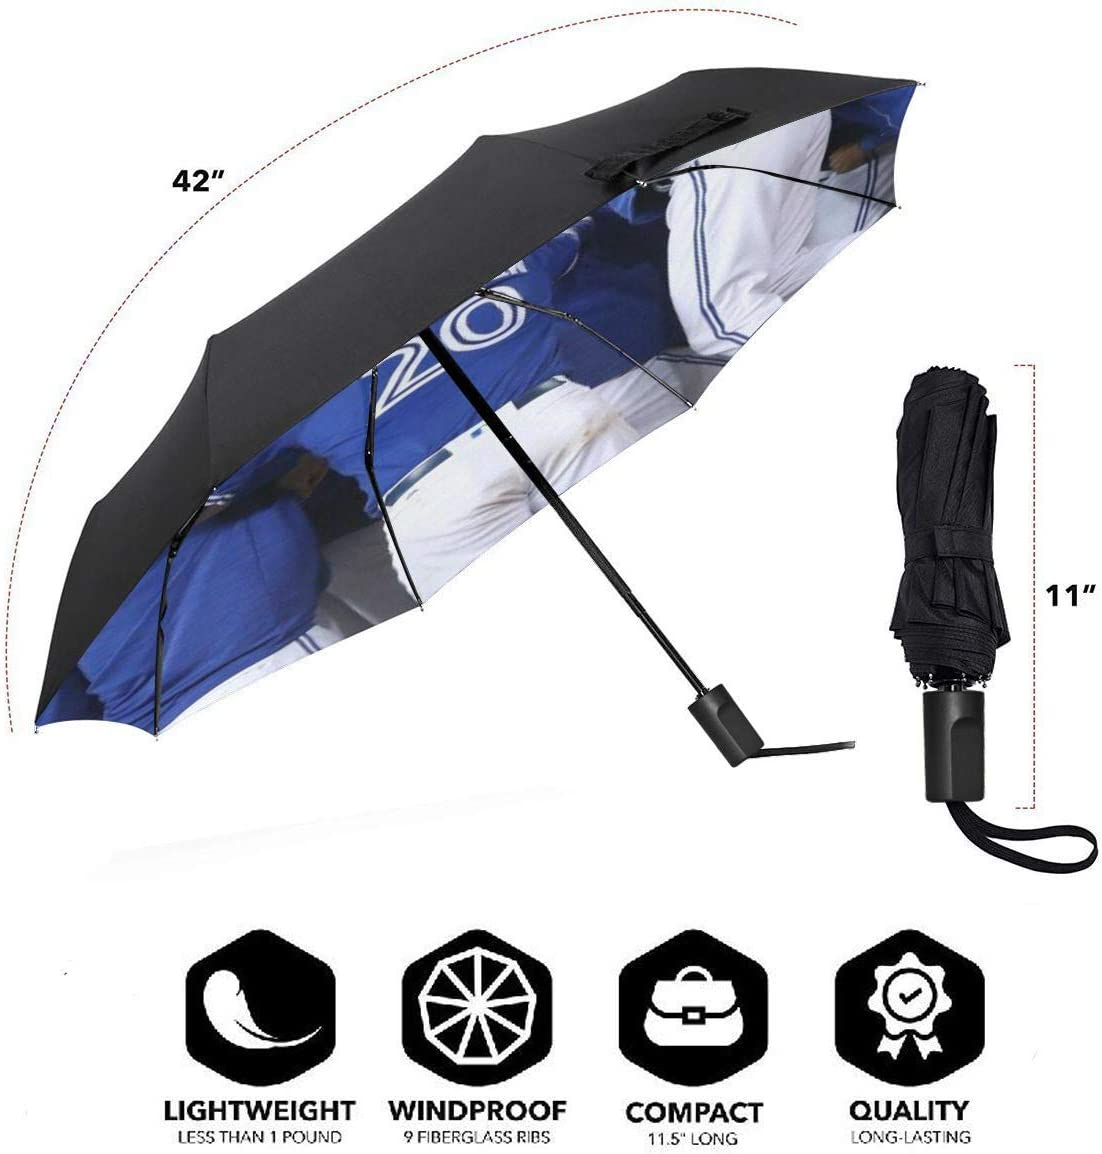 Lovesofun Portable Manual Umbrella Toron-to Blue Jay-s Compact Folding Business Umbrellas UV Protection Manual Tri-fold Umbrella for Men and Women